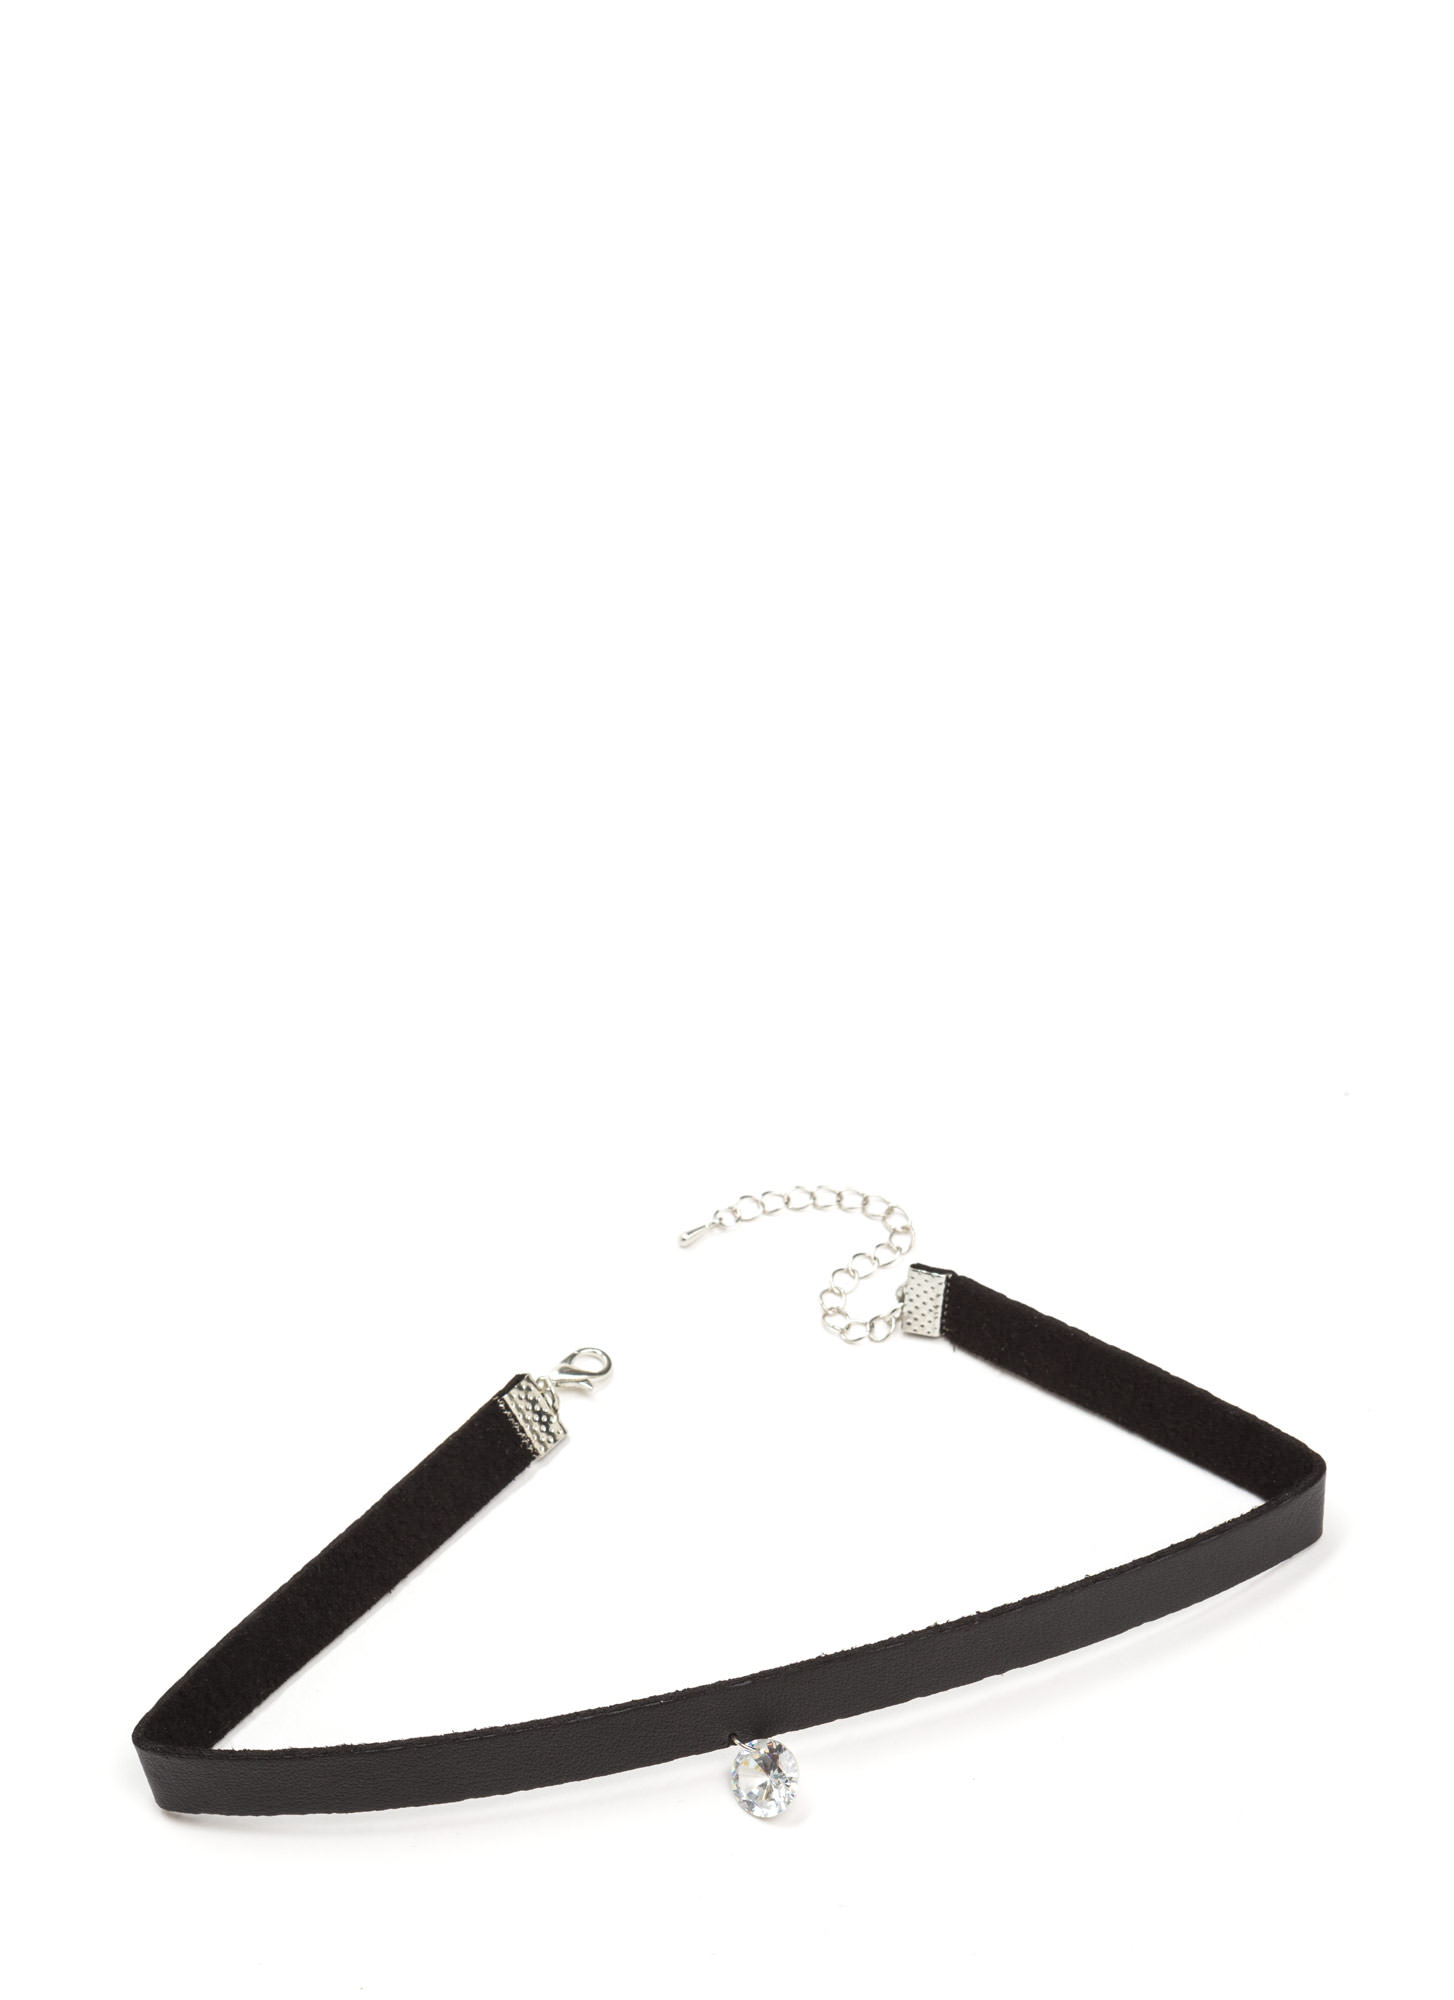 Crystal Clear Faux Leather Choker BLACKSILVER